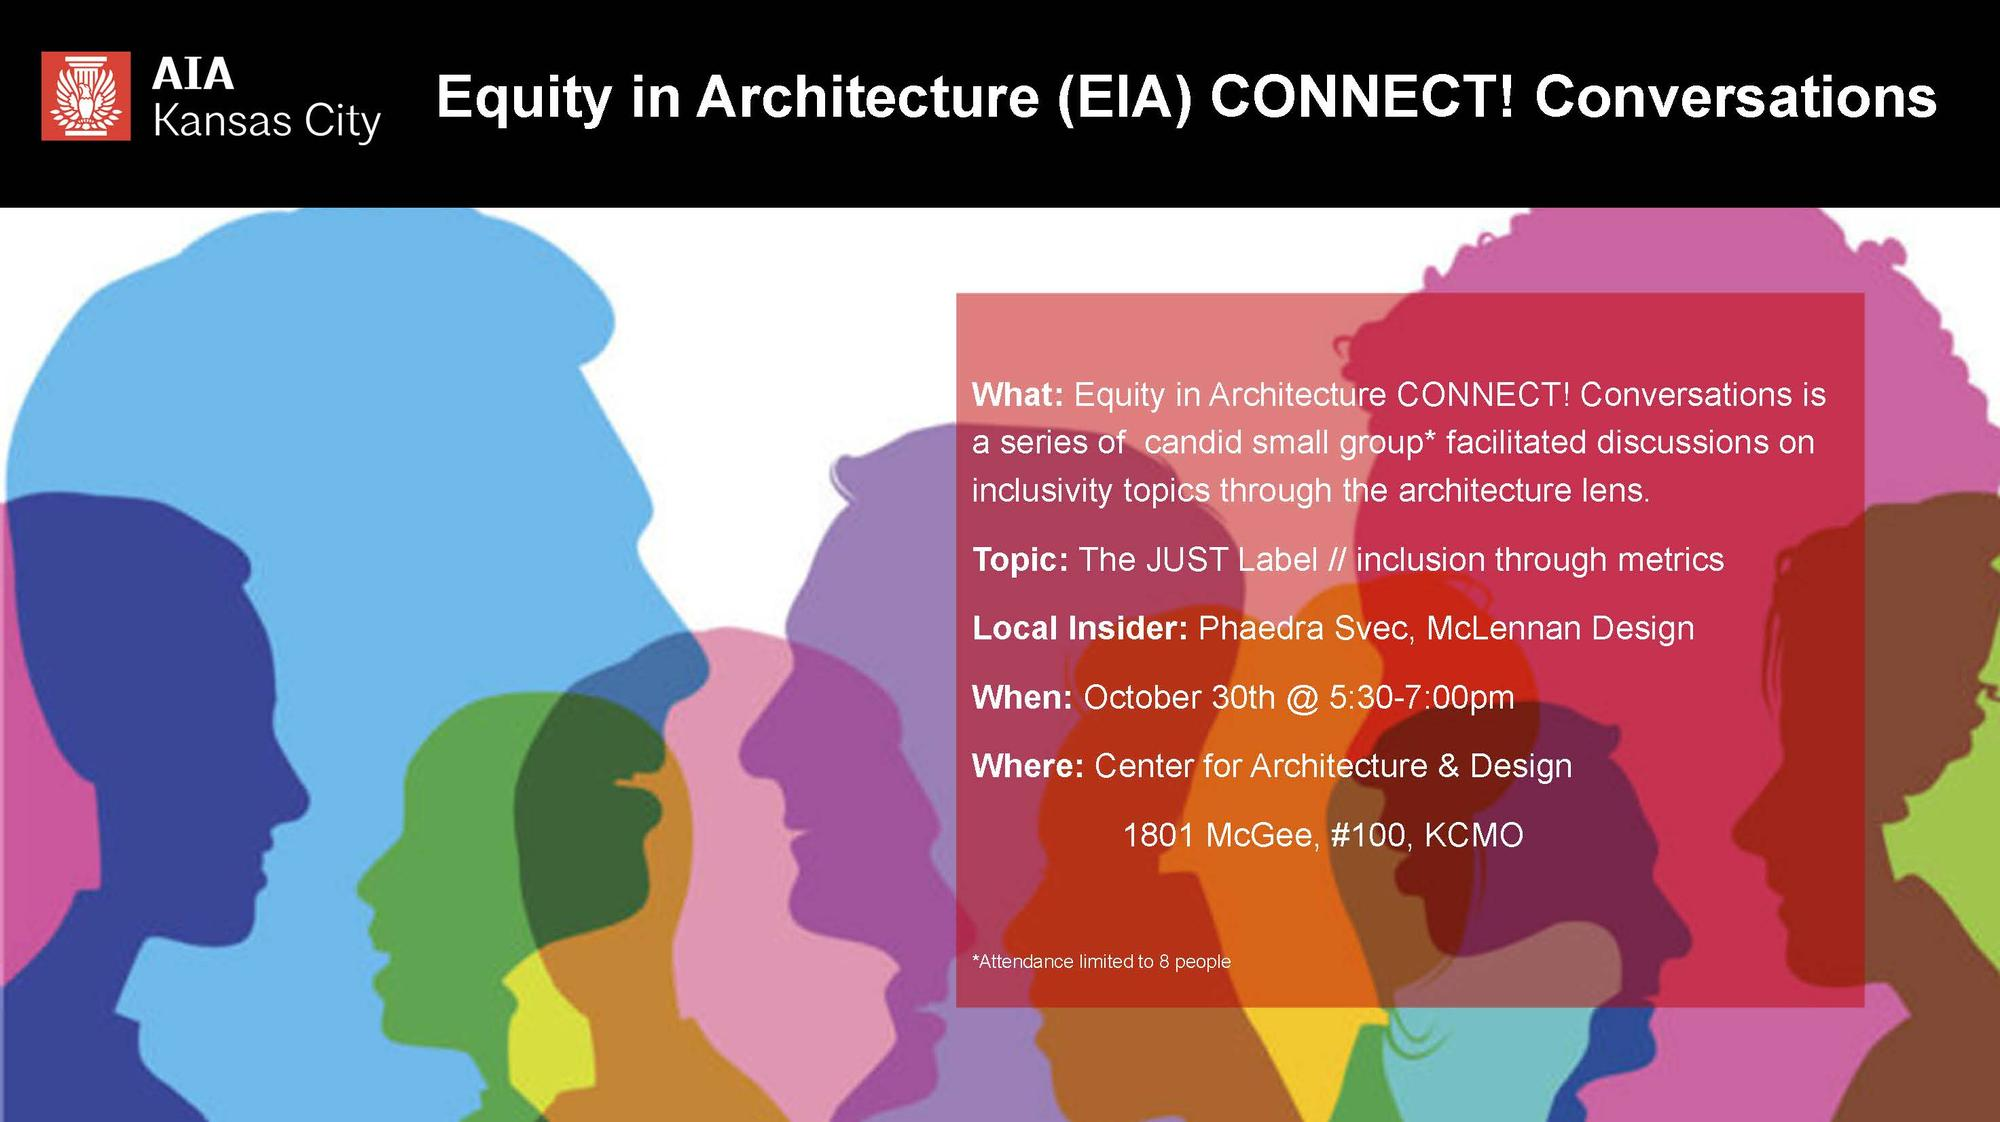 Equity in Architecture: CONNECT! Conversations: The JUST Label